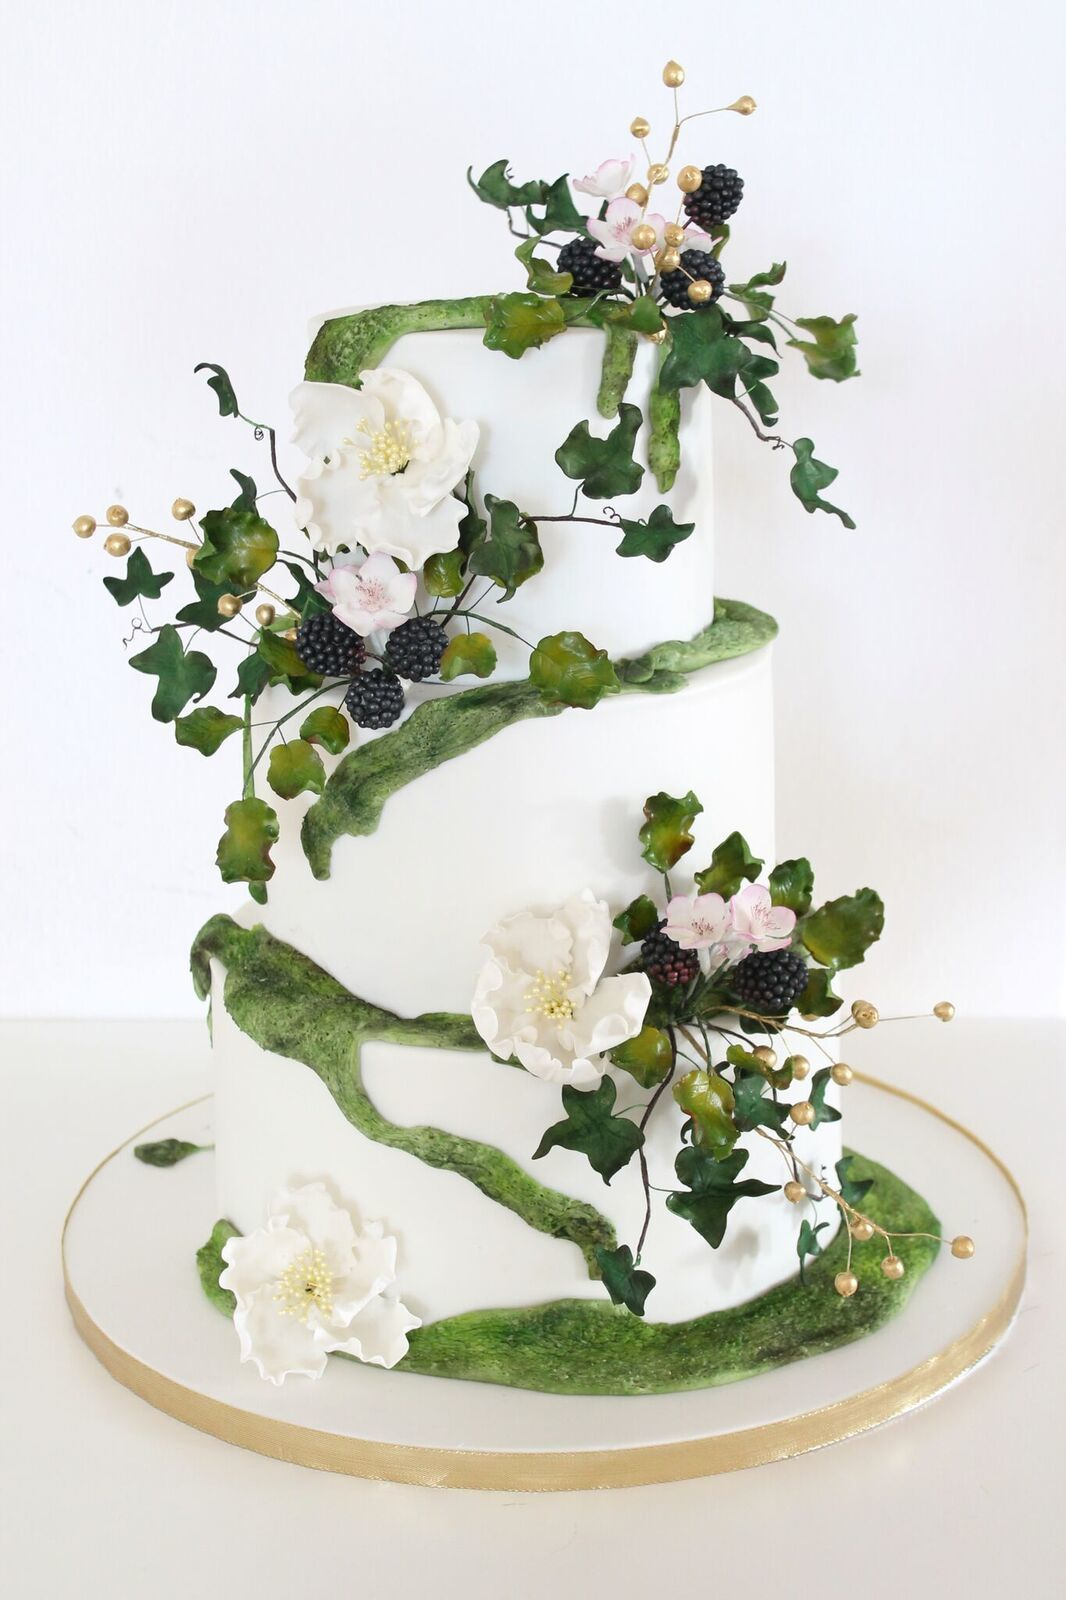 Enchanted forest themed wedding cake by Bettina Valentek on satinice ...